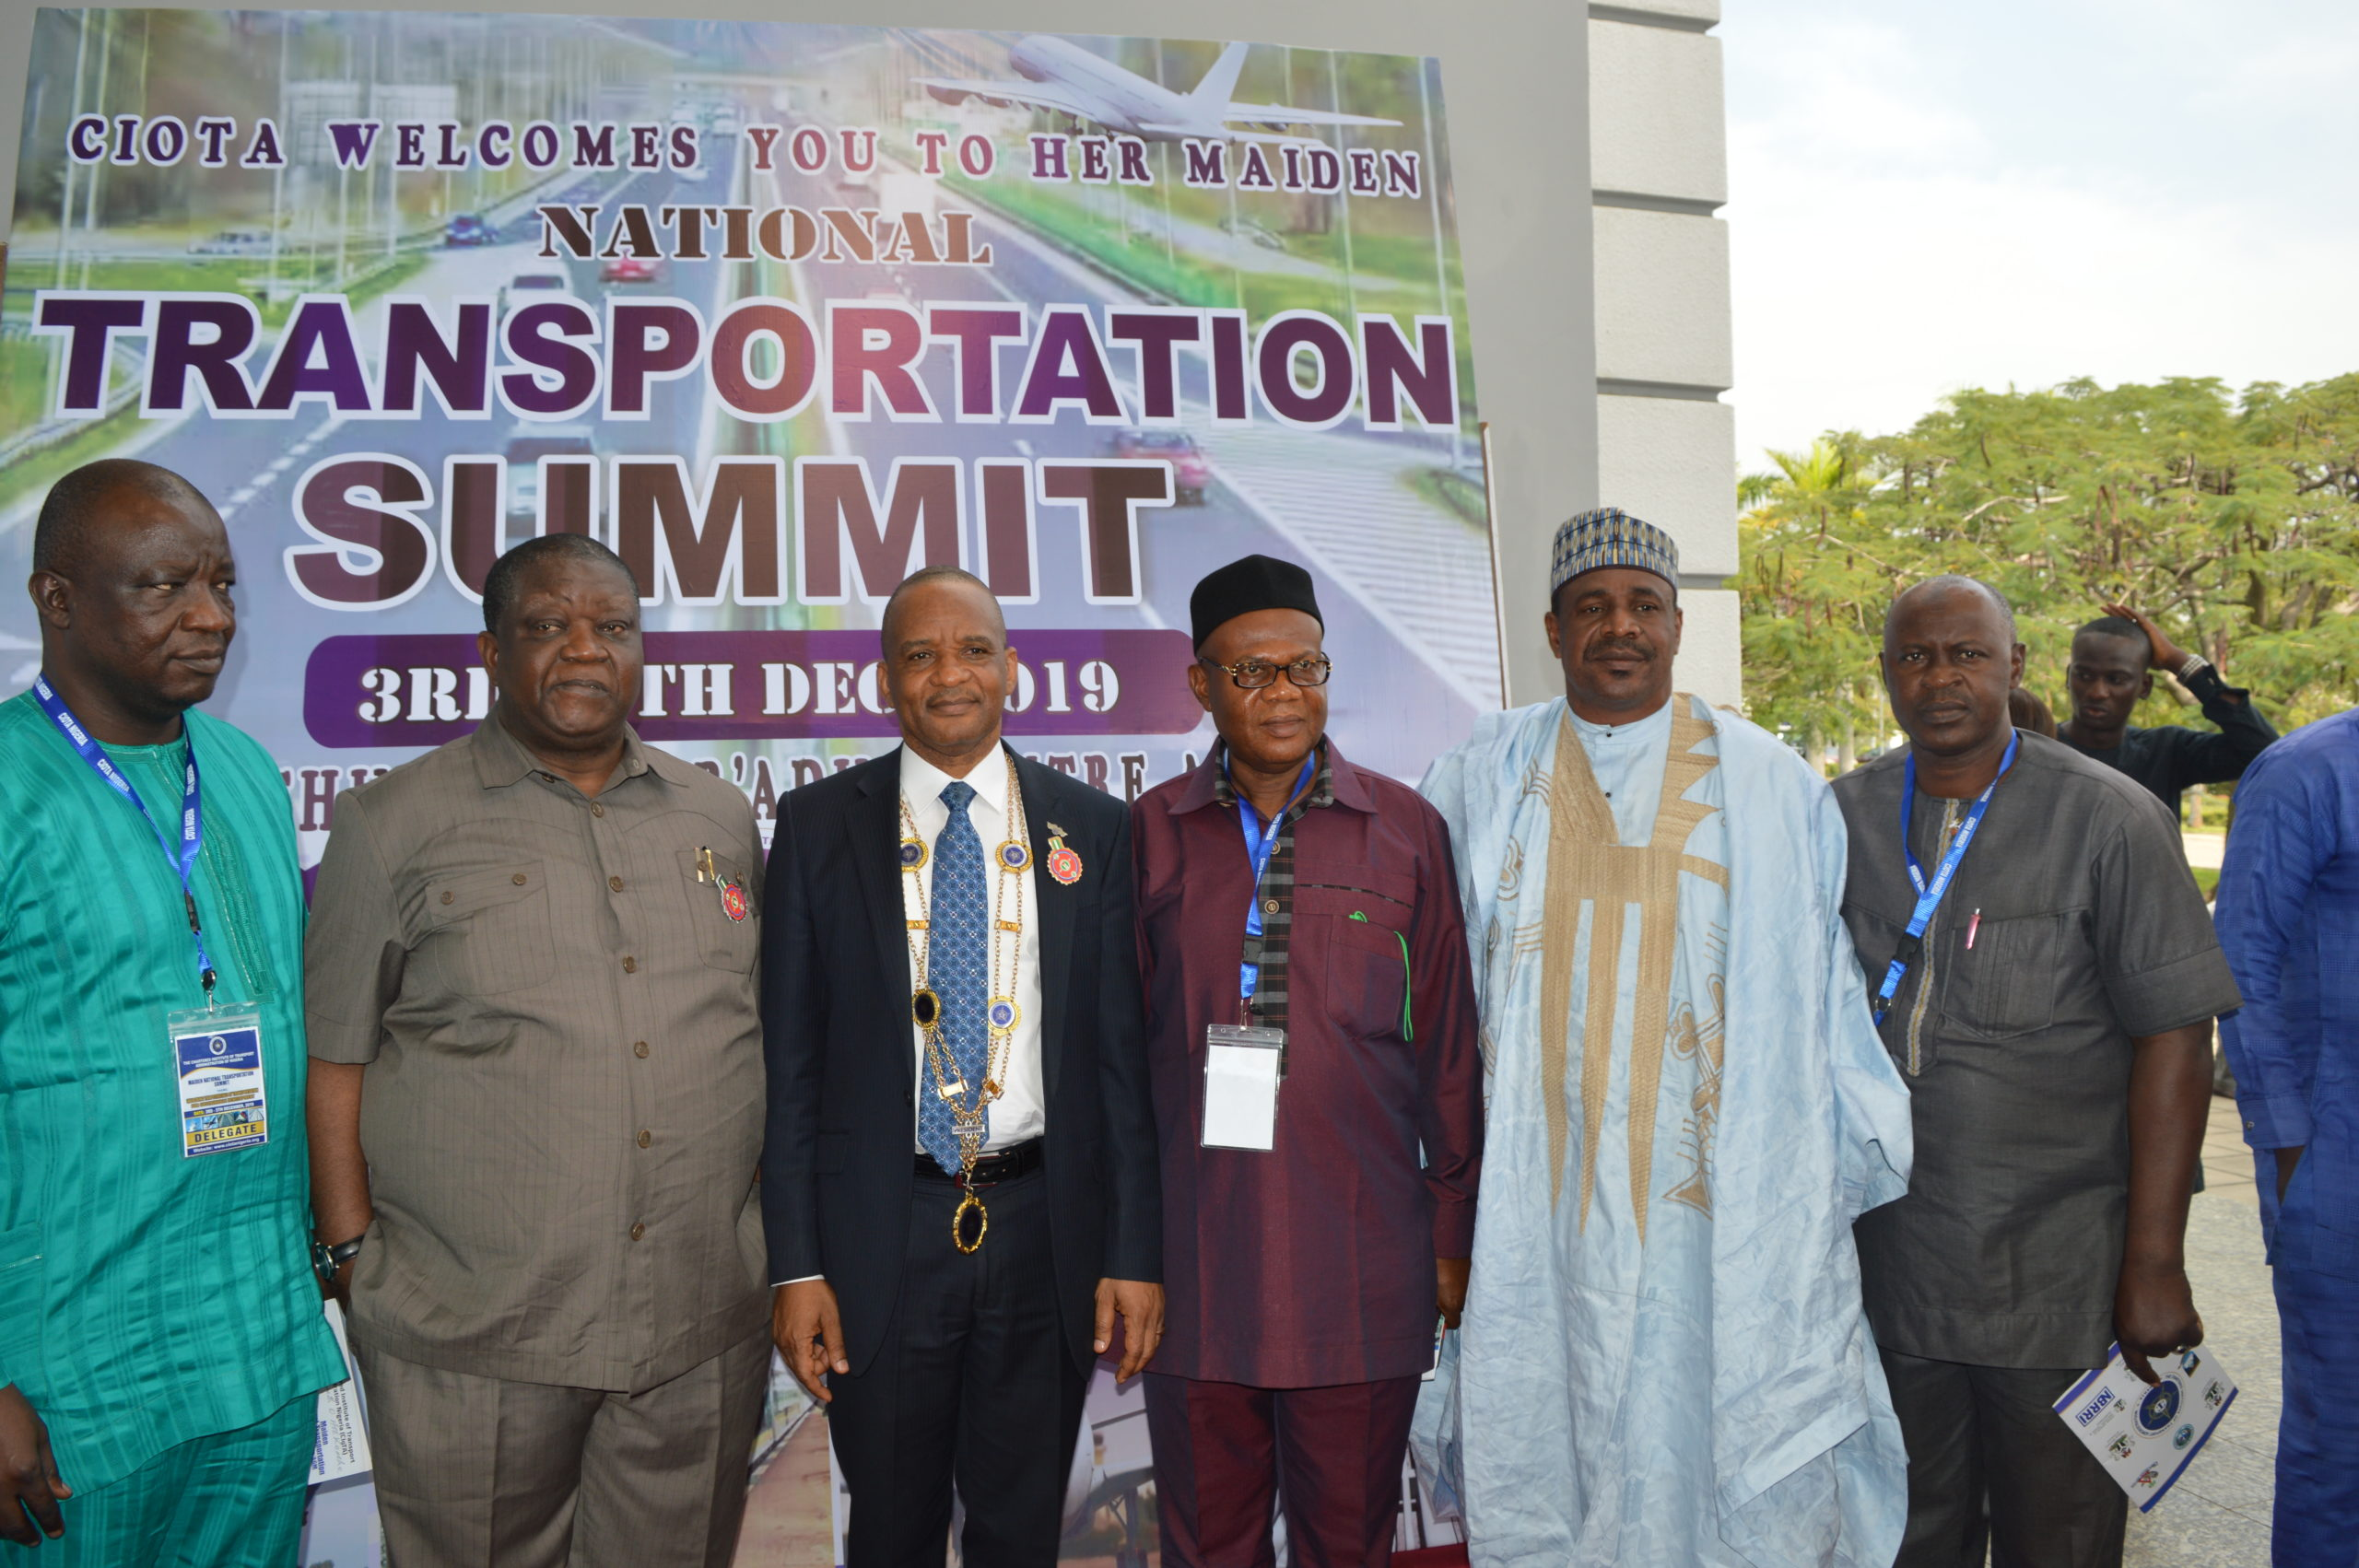 JAMOH LED CIOTA, HOLDS MAIDEN NATIONAL TRANSPORT SUMMIT